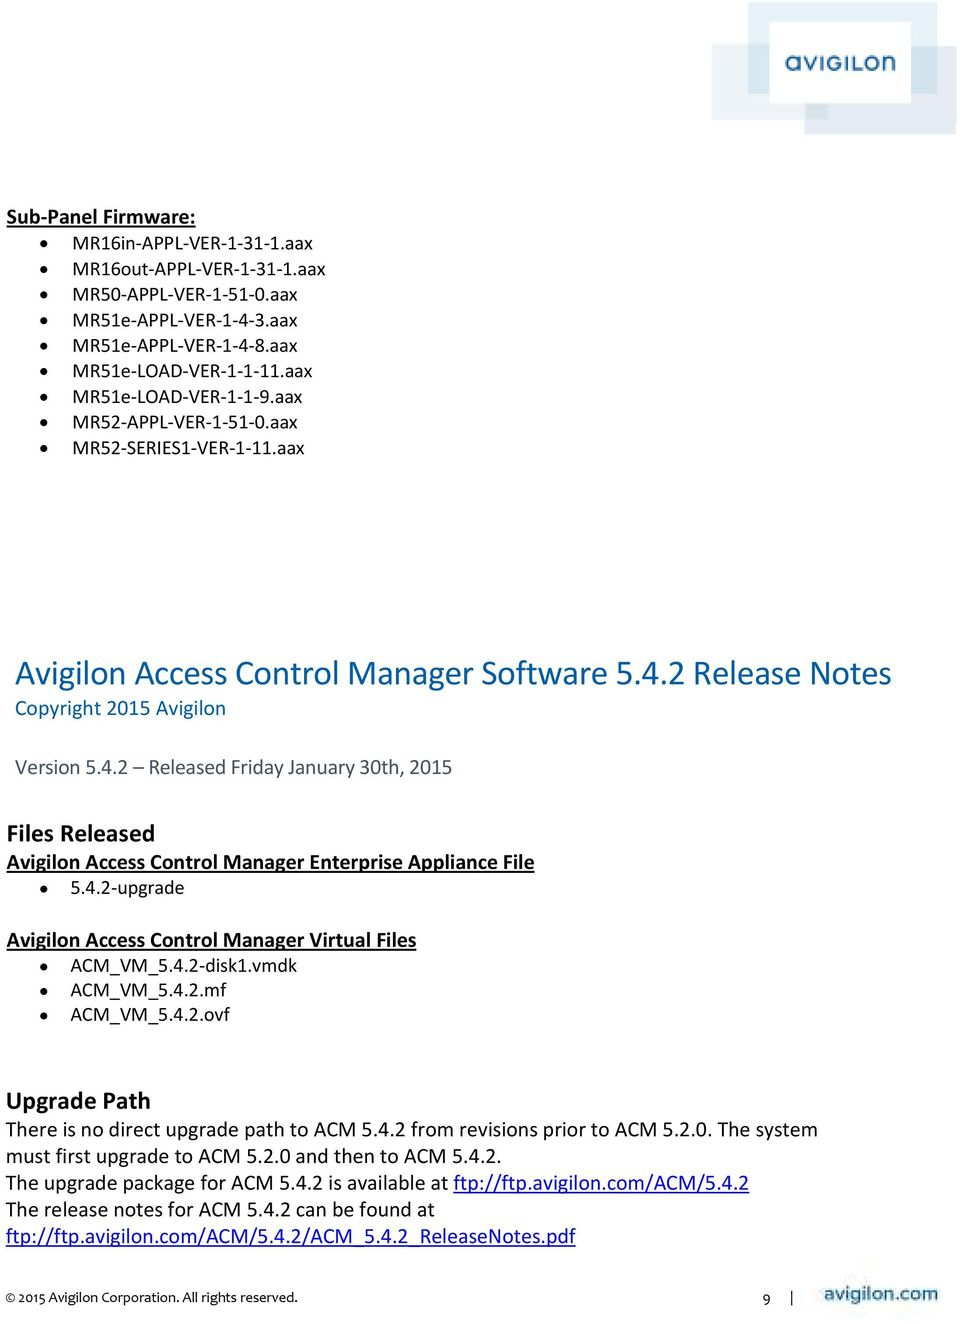 avigilon access control manager manual